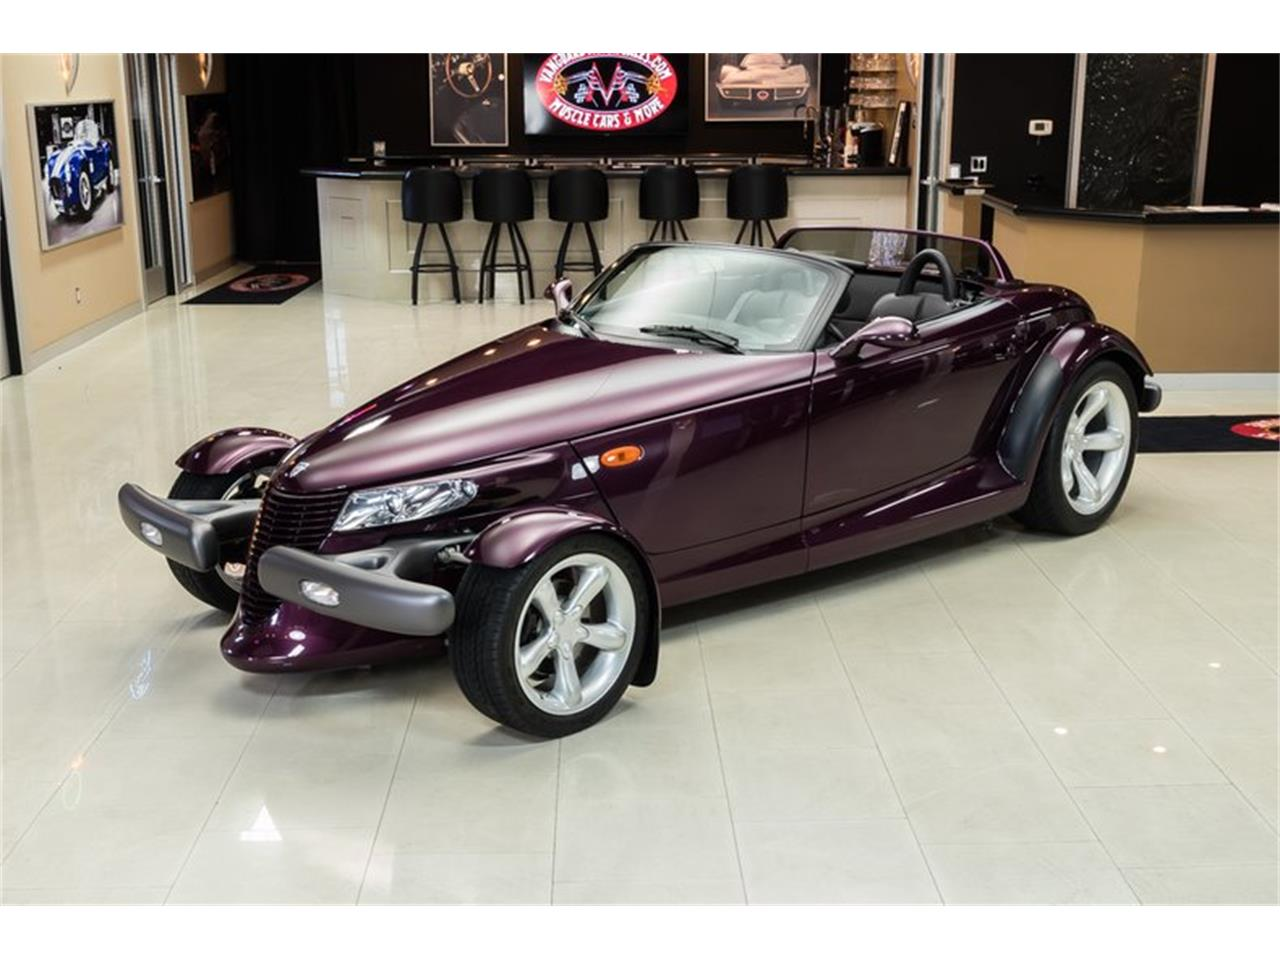 Large Picture of 1997 Plymouth Prowler located in Plymouth Michigan - $42,900.00 - PNI7